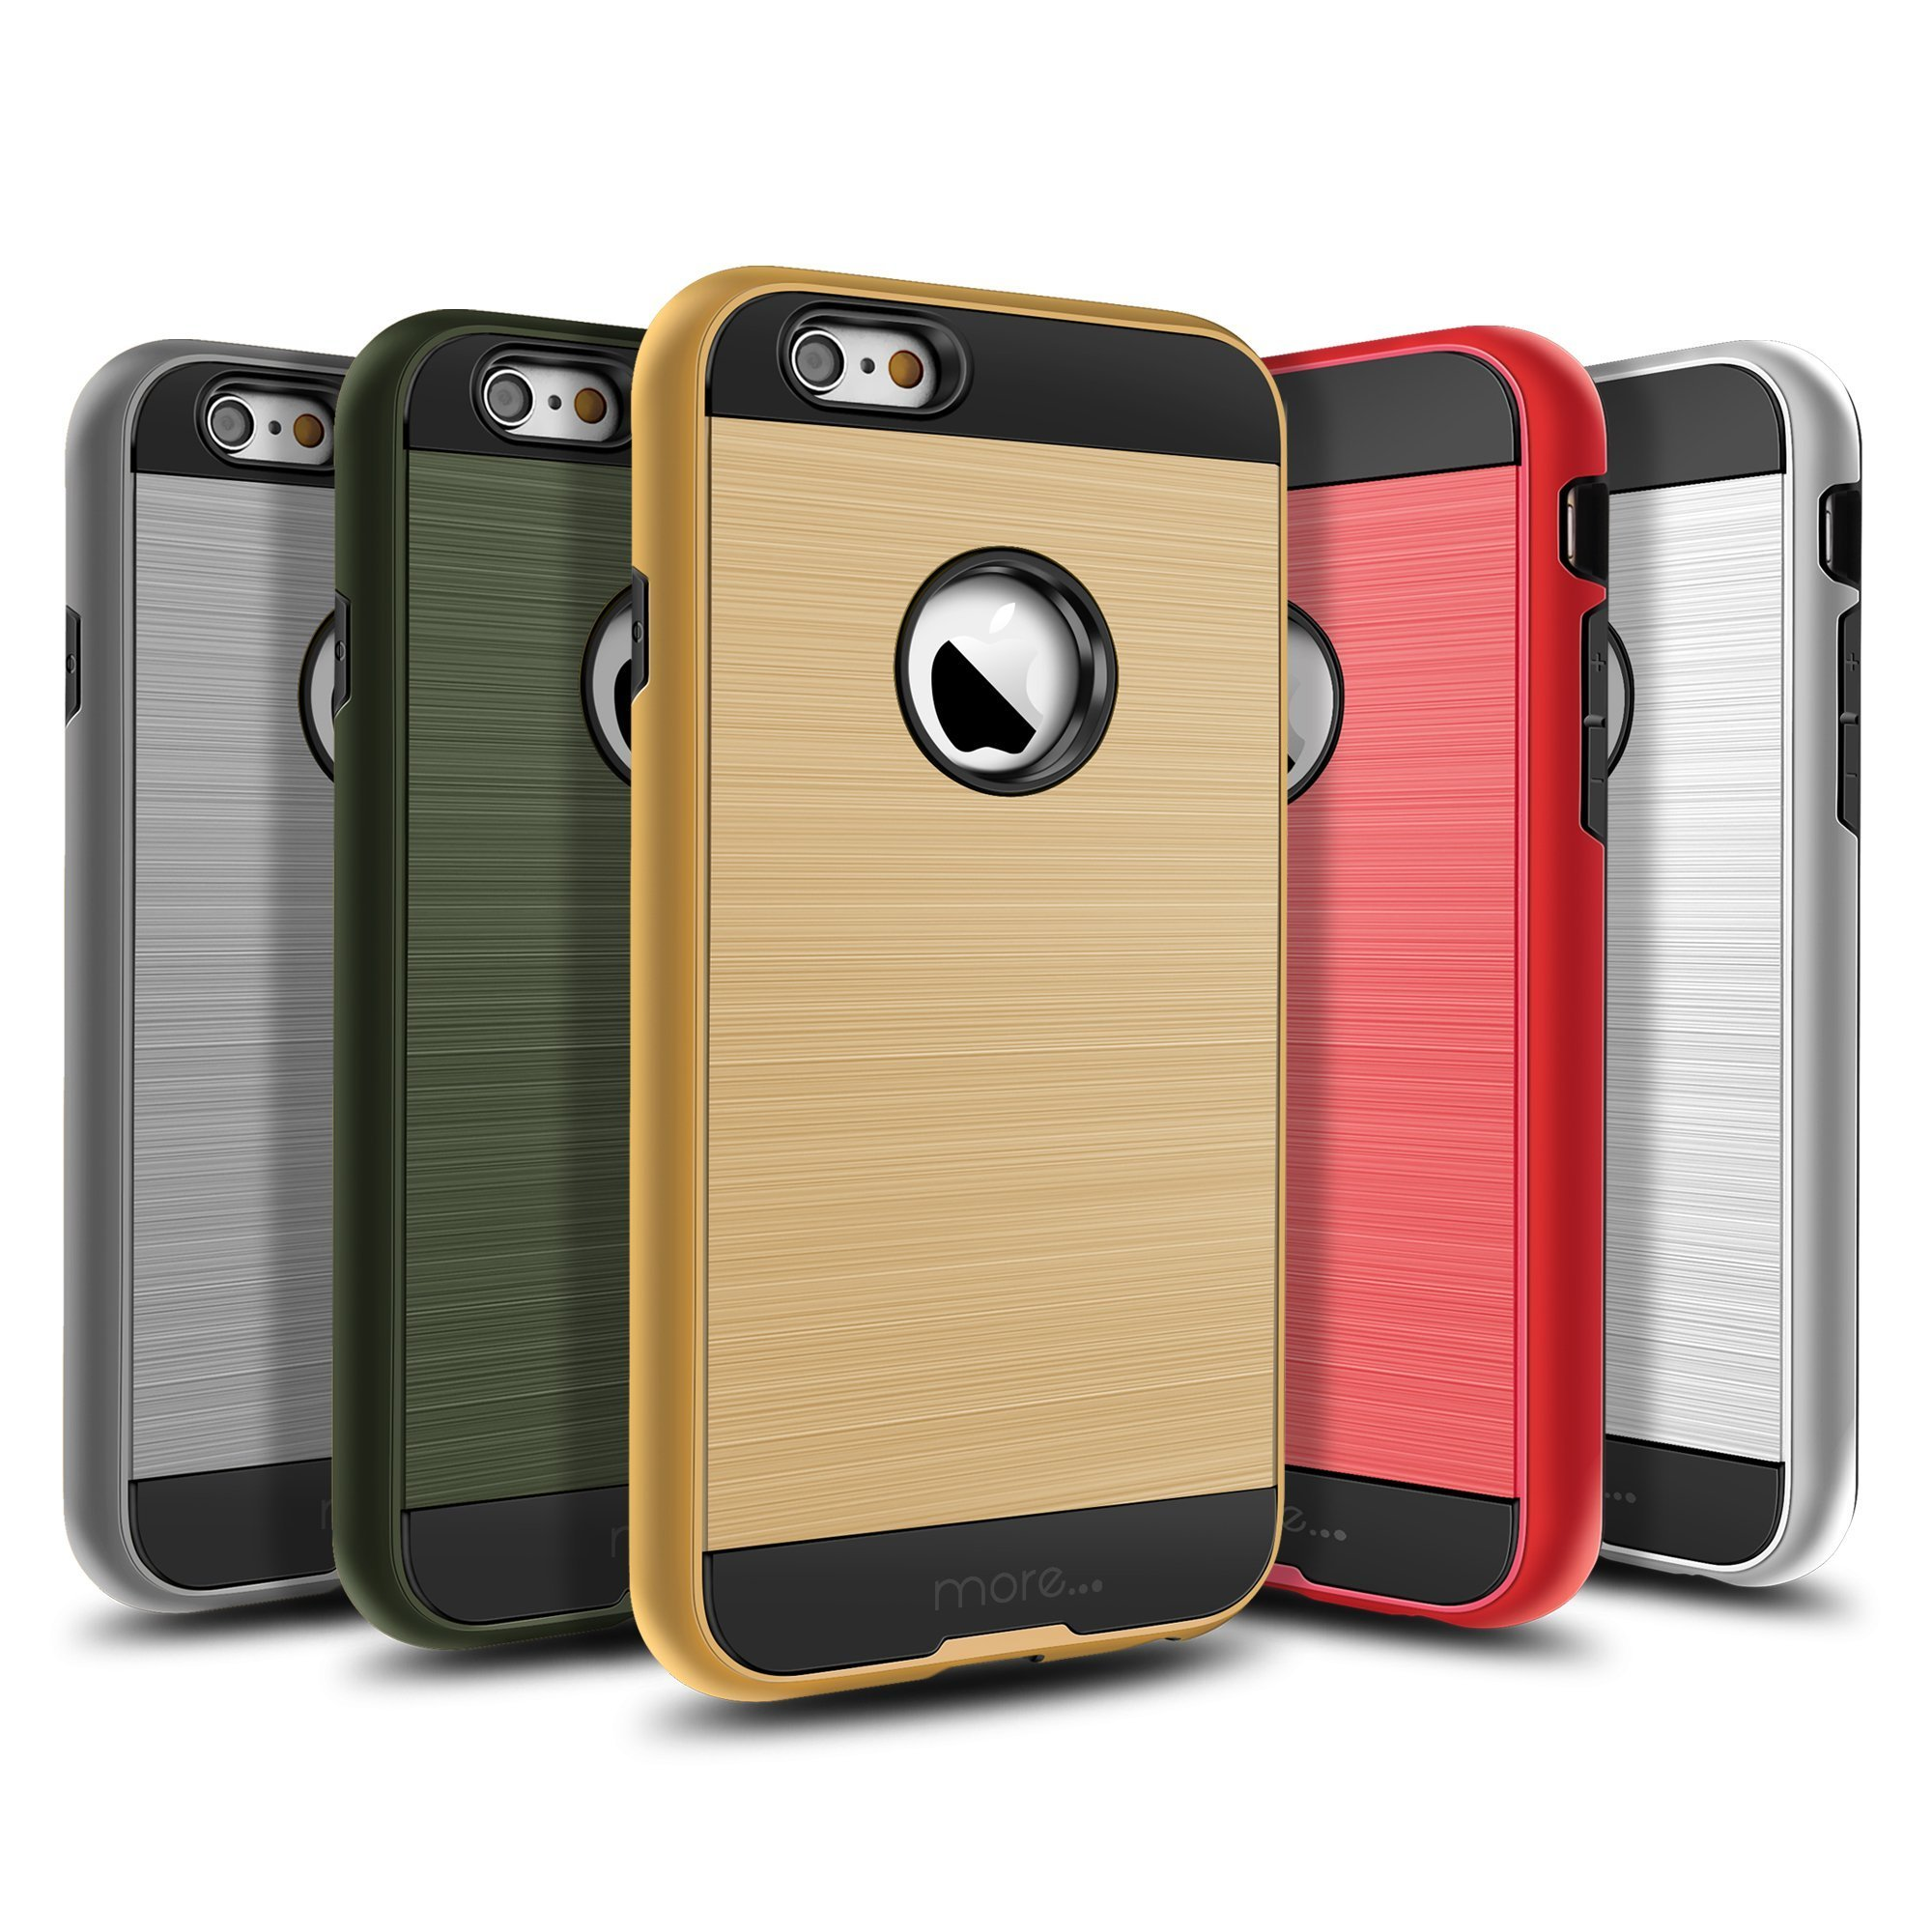 Top 5 Best iPhone 6s Cases from More UK